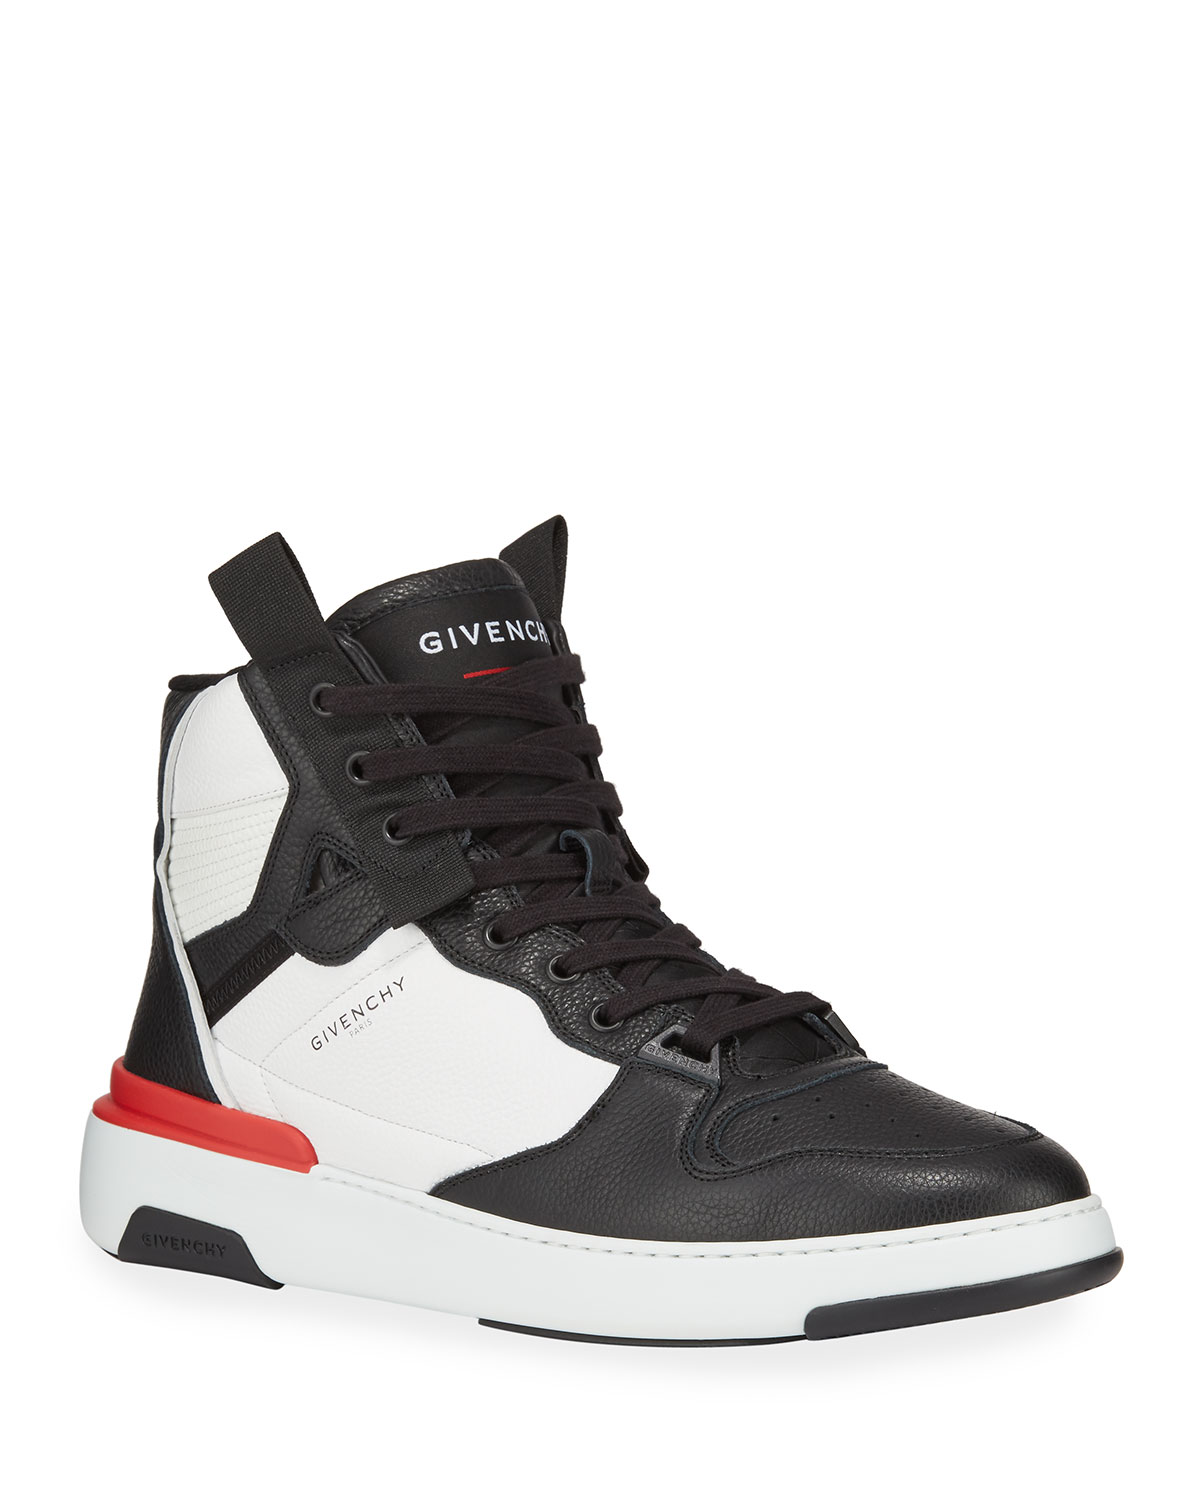 Givenchy Sneakers MEN'S TWO-TONE LEATHER BASKETBALL SNEAKERS